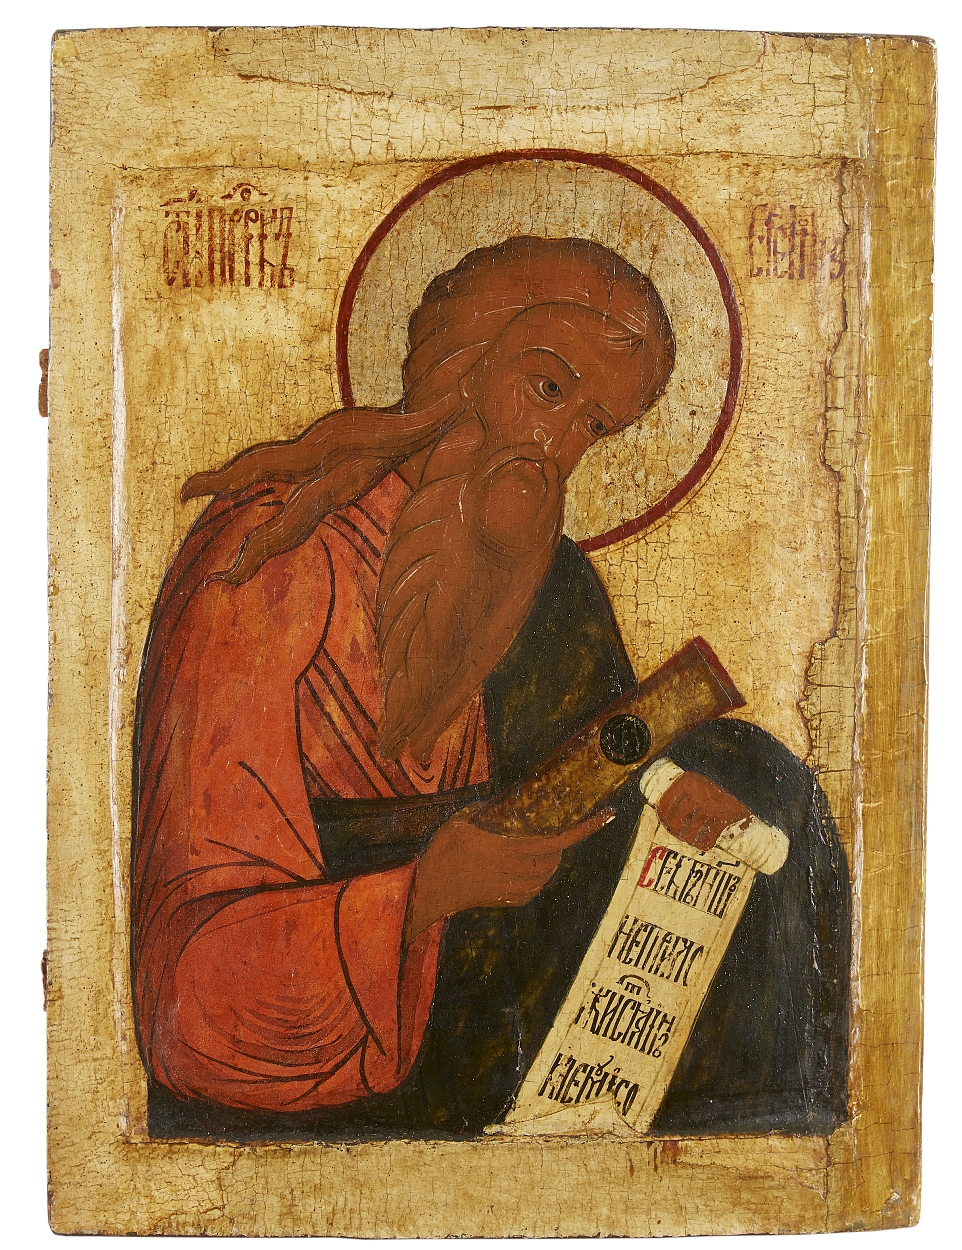 A Russian icon of Jeremiah the Prophet